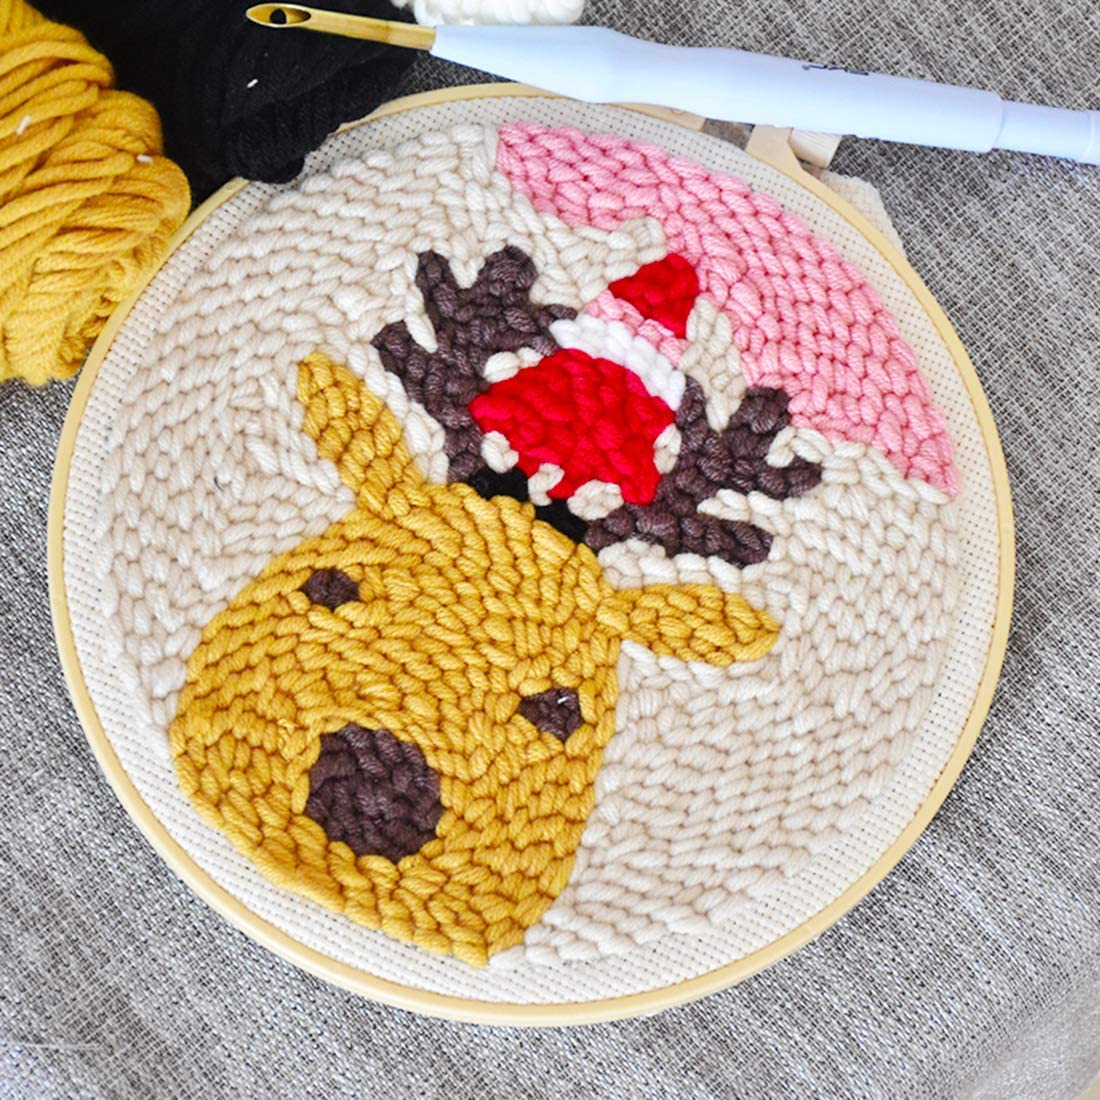 Yamix Punch Needle Starter Kit Christmas Theme DIY Handcraft Embroidery Knitting Rug Punch Beginner Kit Latch Hook Kits with Punch Needle Colorful Yarn and Frame Cute Fawn